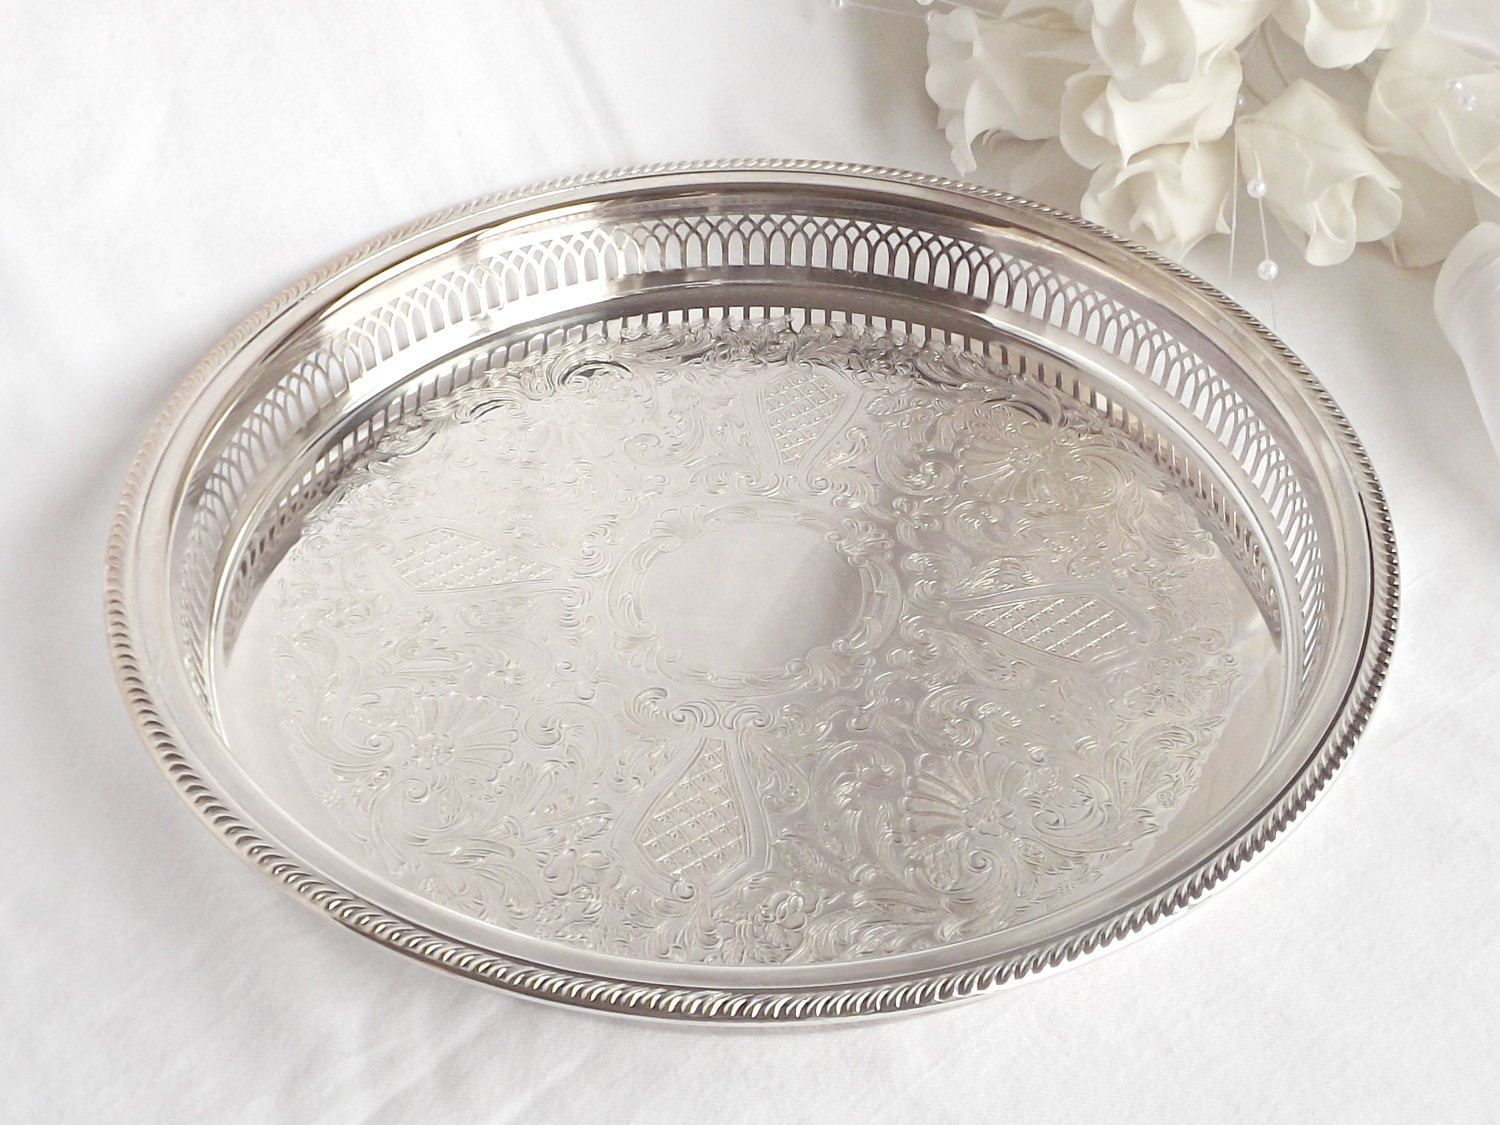 Silver Plated Vanity Tray French Farmhouse Boudoir Decor Wedding Serving